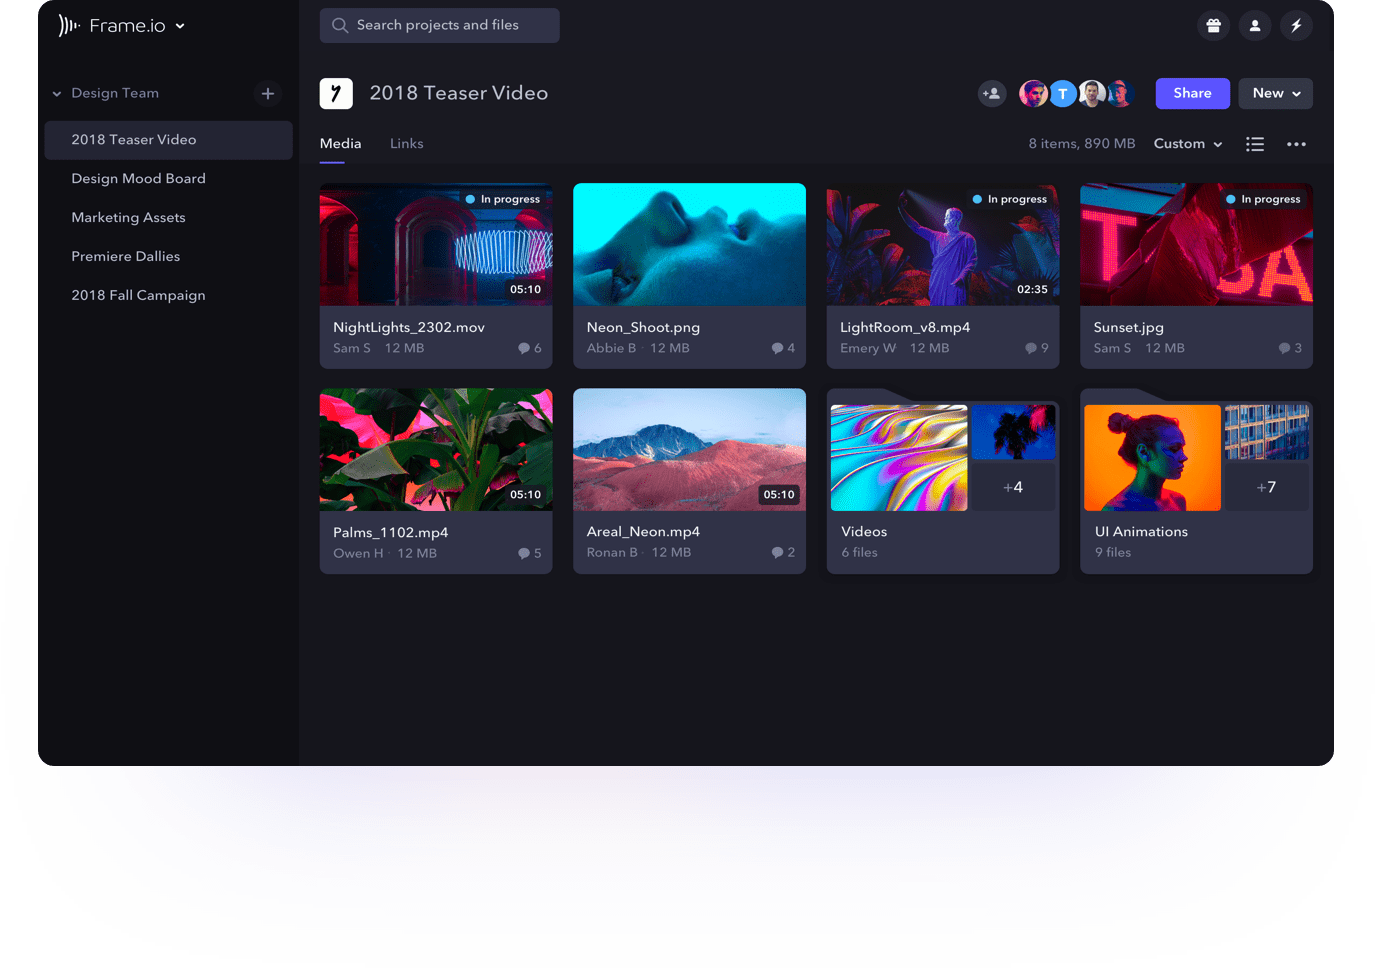 Frame.io project view